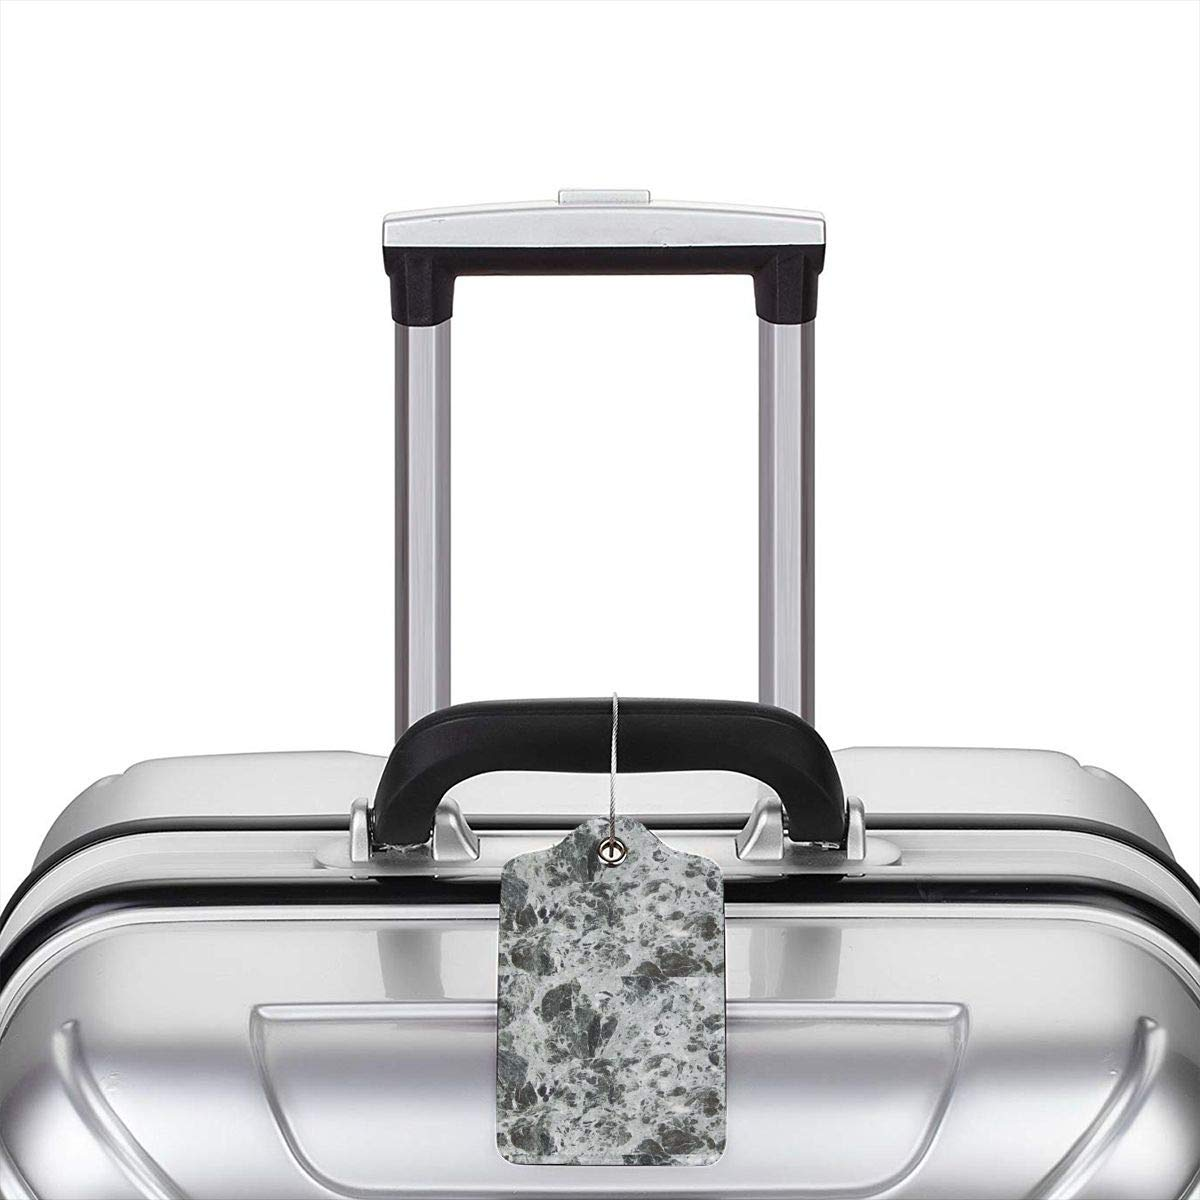 Gray and White Marble Texture 2.7 x 4.6 Blank Tag Key Tags for Travel Suitcase Handbags Gift Leather Luggage Tags Full Privacy Cover and Stainless Steel Loop 1 2 4 Pcs Set